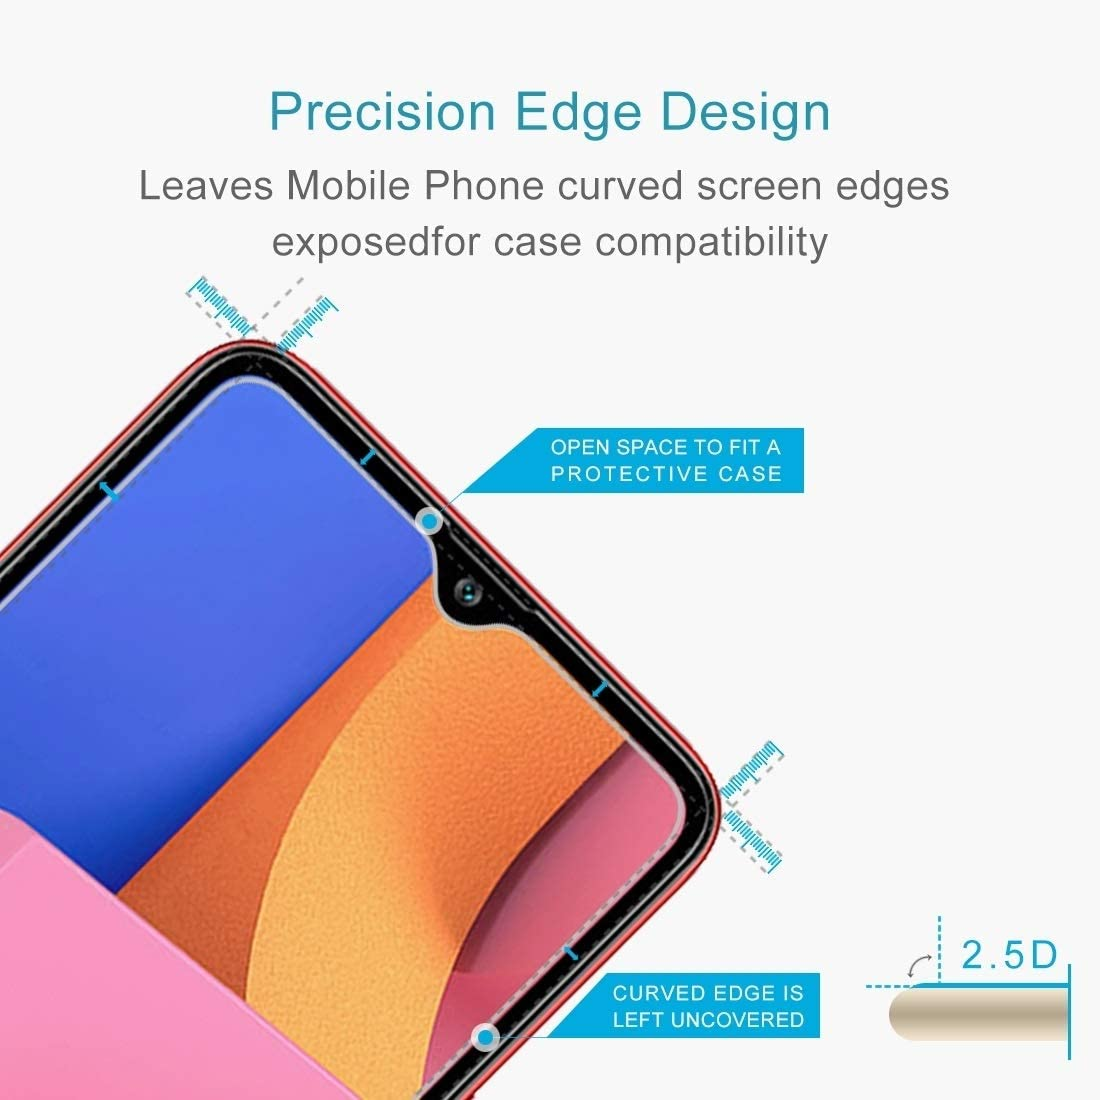 MDHT TNH AYSMG 50 PCS 0.26mm 9H 2.5D Tempered Glass Film for Galaxy A20s